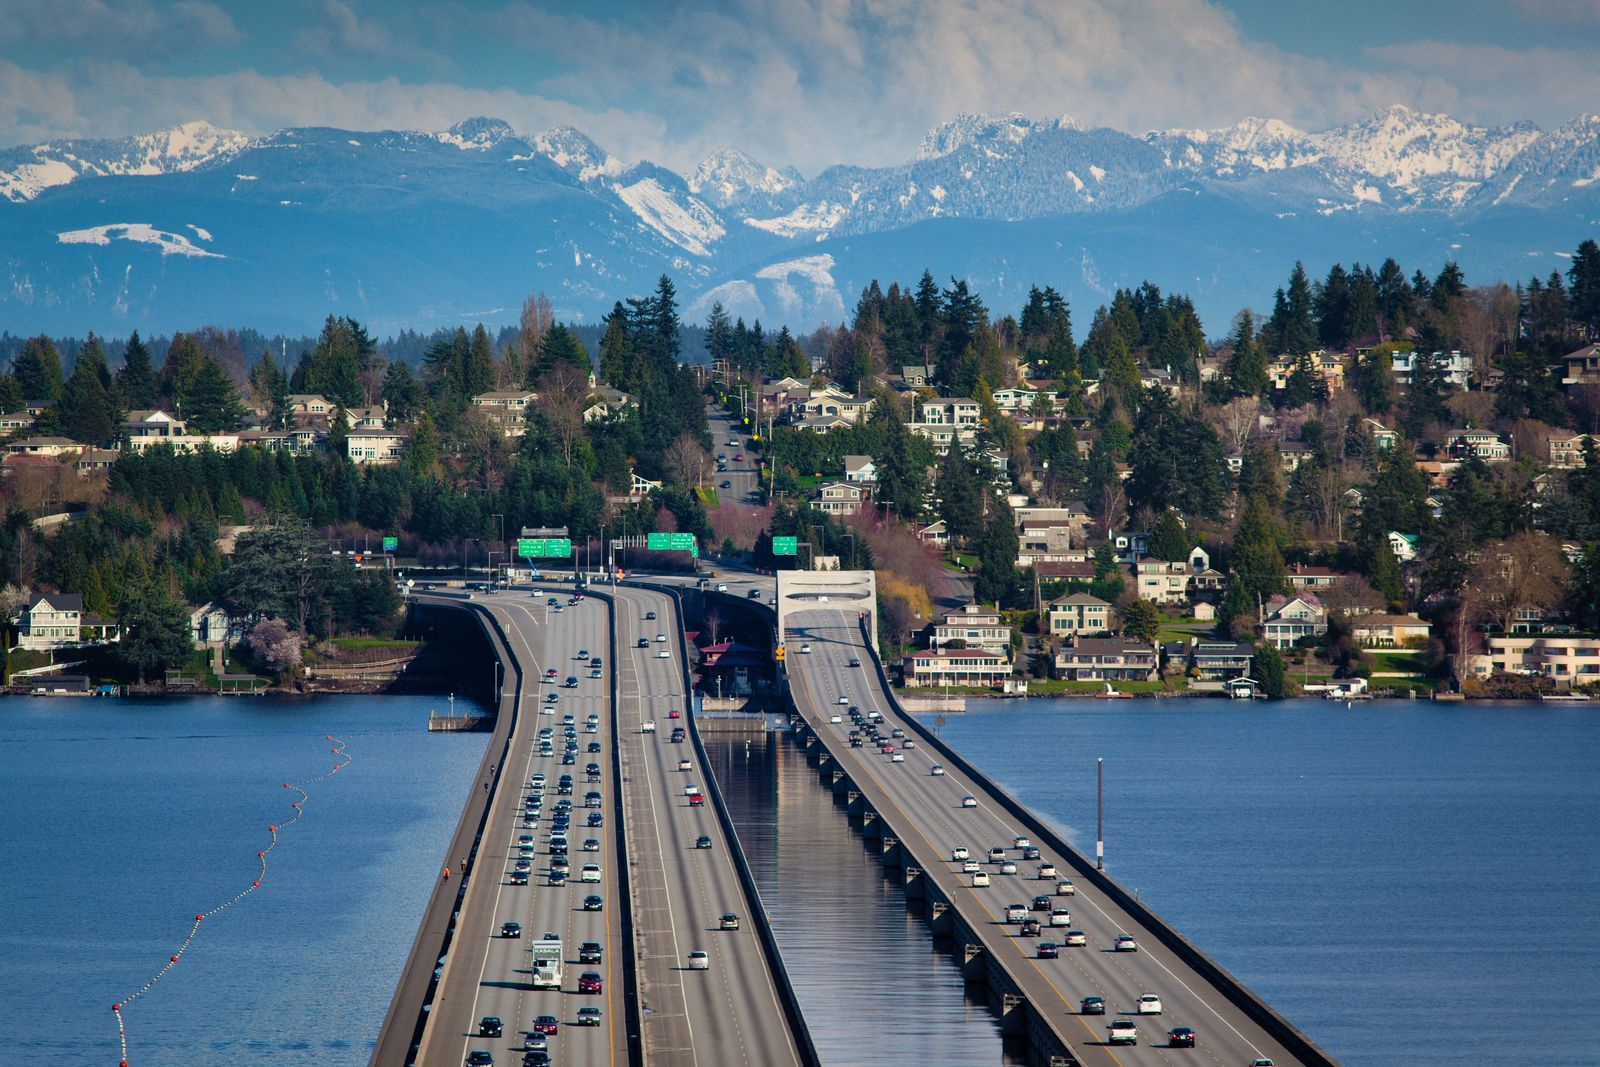 The Homer M Hadley floating bridge carries the Interstate 90 across Lake Washington, Washington state. A ...